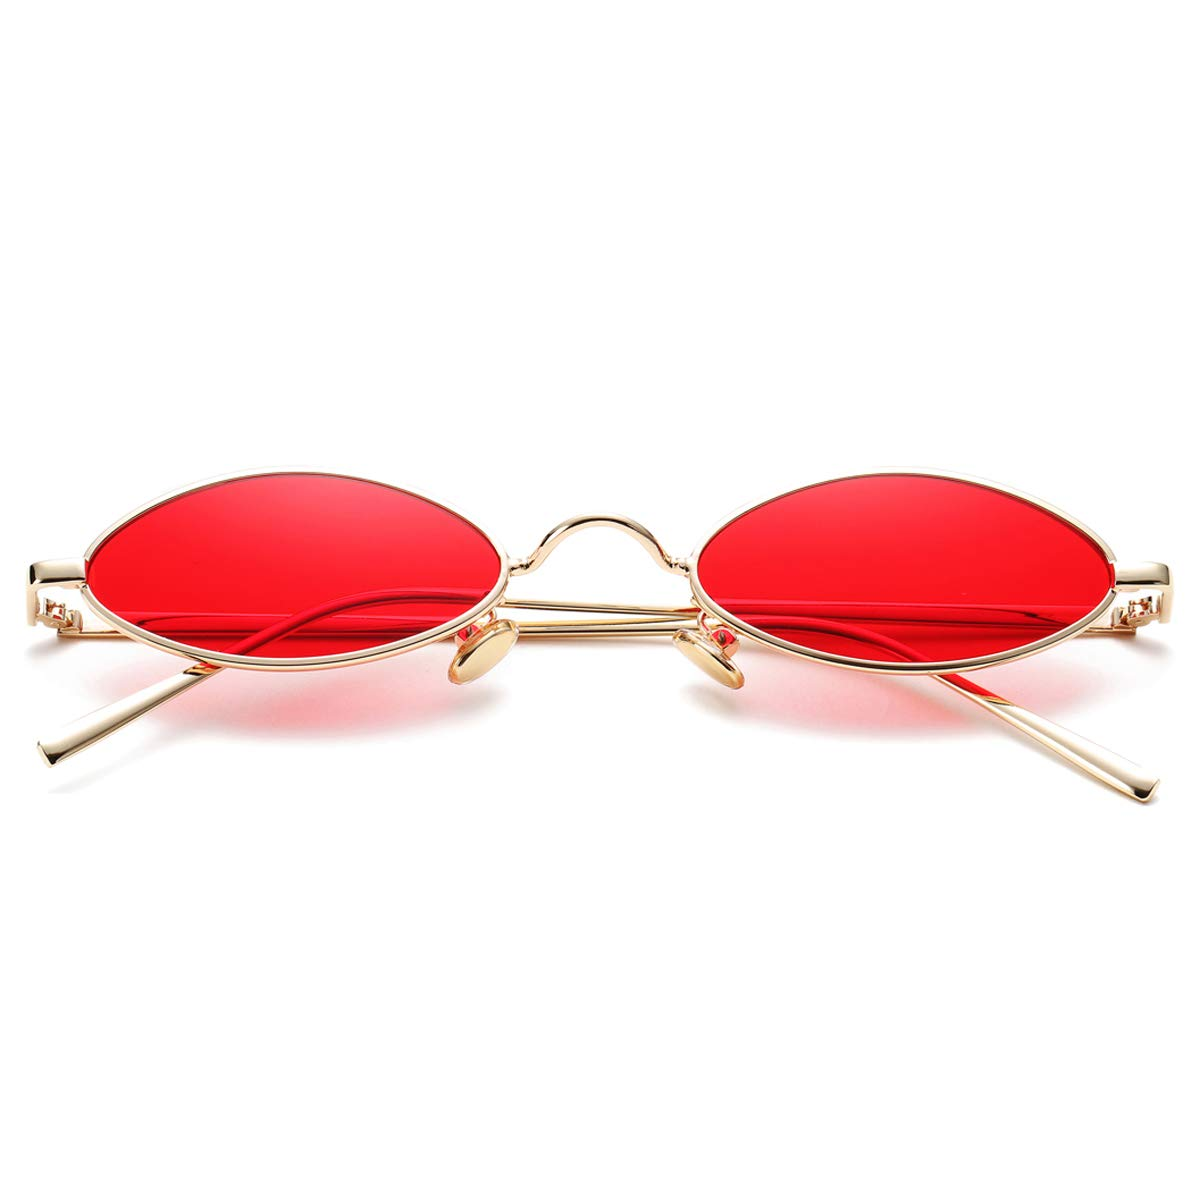 A3 gold Frame Red Lens Vintage Small Oval Sunglasses for Women Men Hippie Cool Metal Frame Sun Glasses